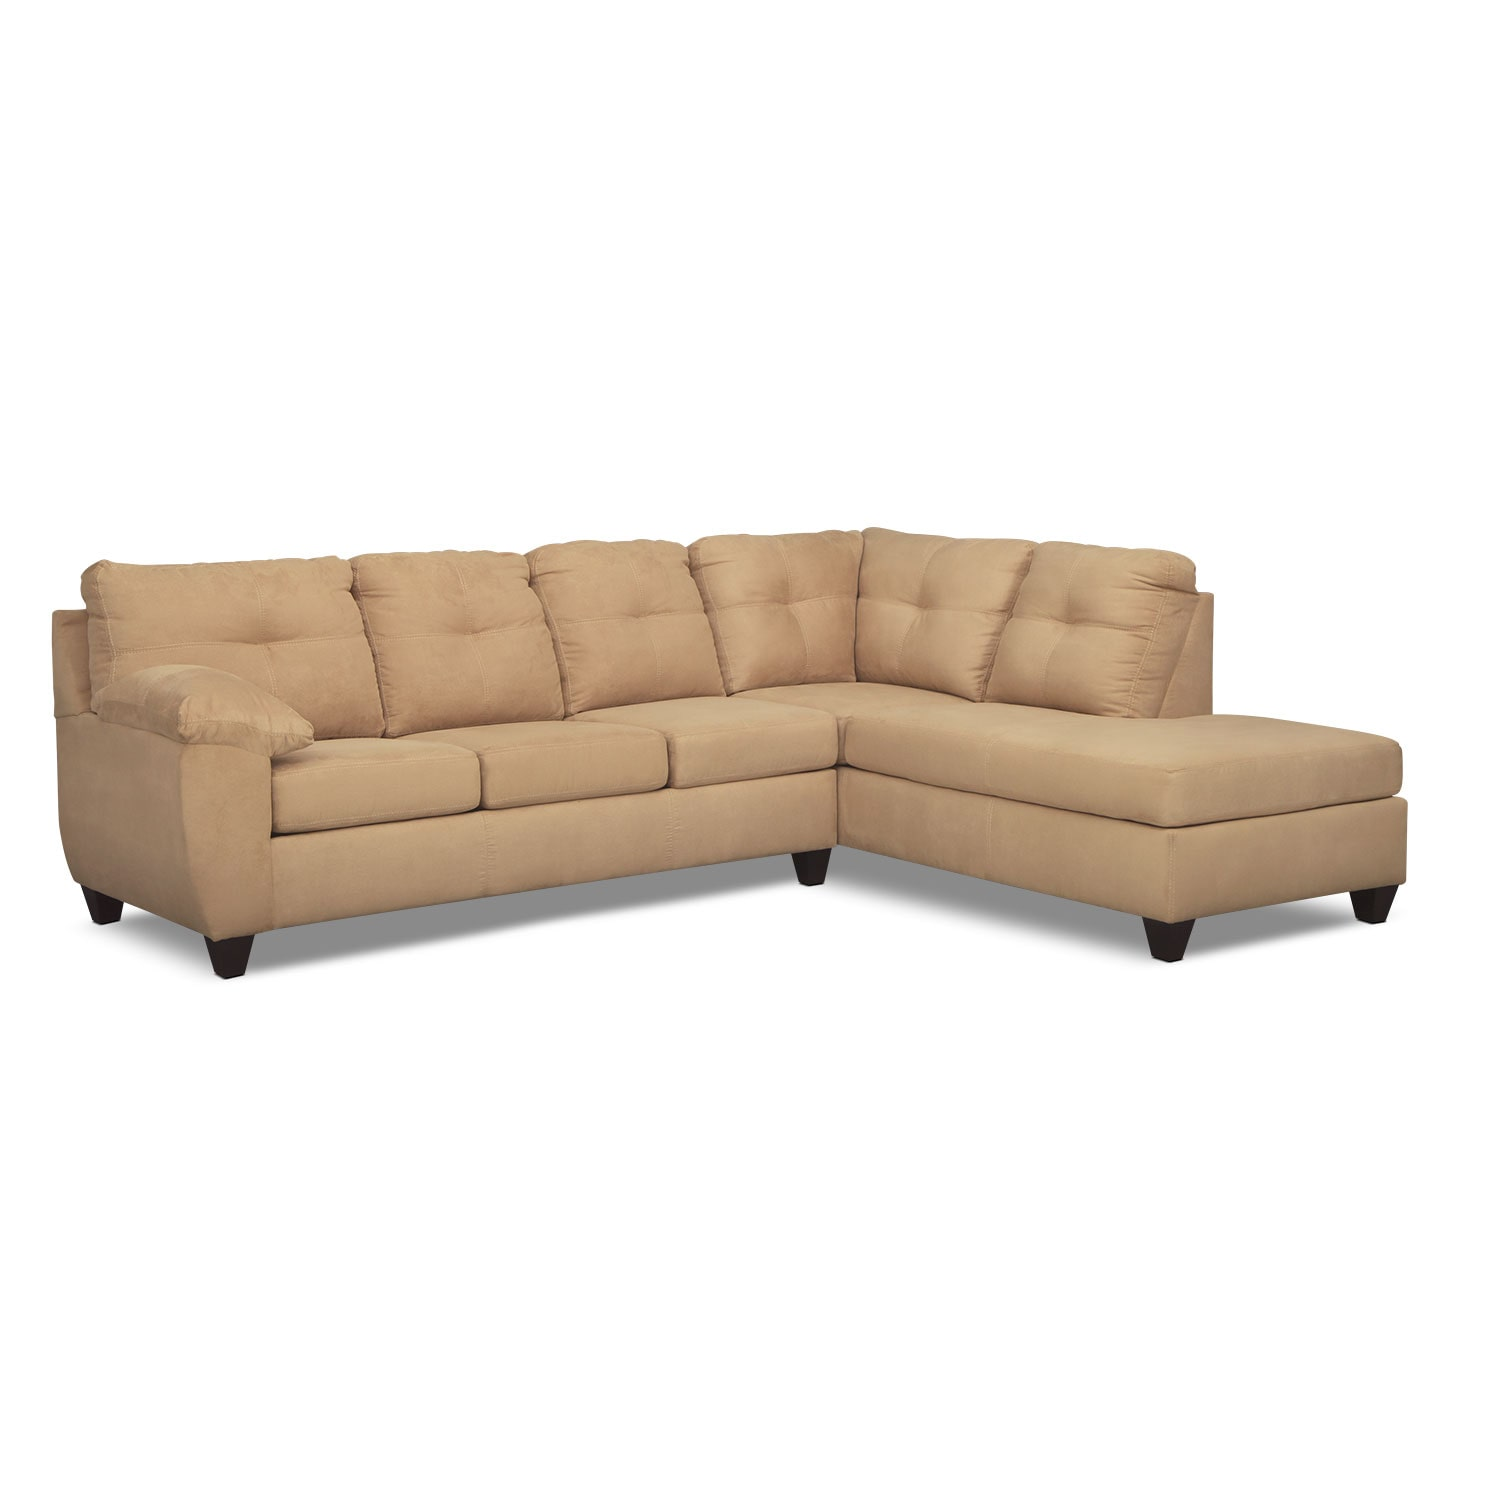 Rialto 2-Piece Memory Foam Sleeper Sectional with Right-Facing Chaise - Camel